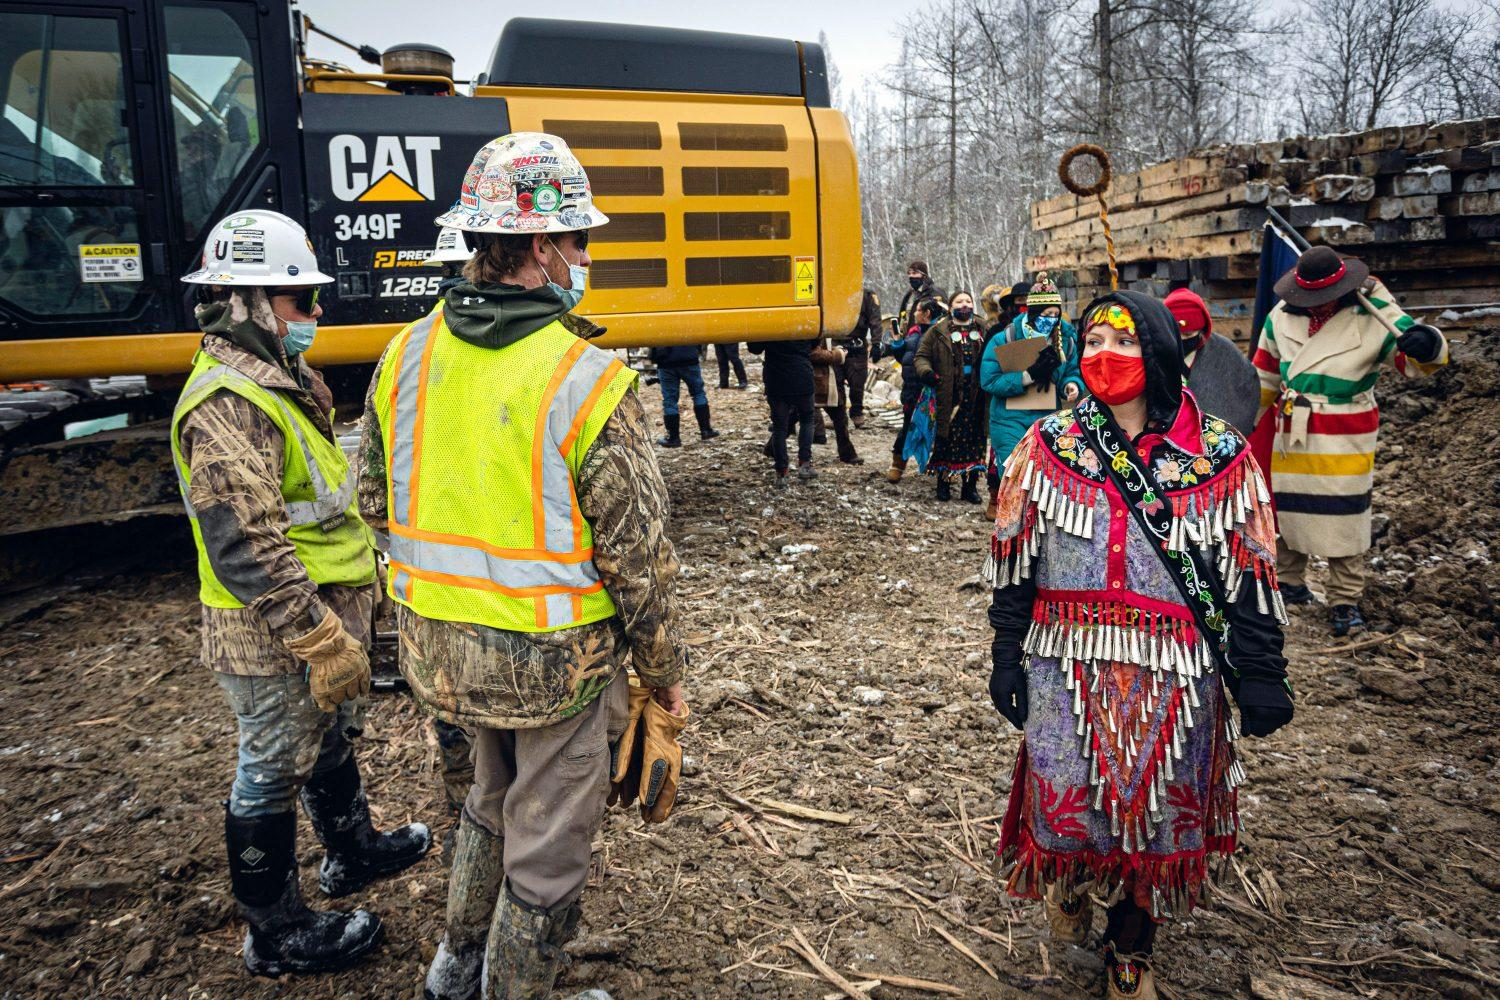 Clad in a traditional jingle dress, Dani Pieratos, a member of the Bois Forte Band of Chippewa, makes eye contact with a construction worker as she exits the construction zone of the Enbridge Line 3 pipeline project.